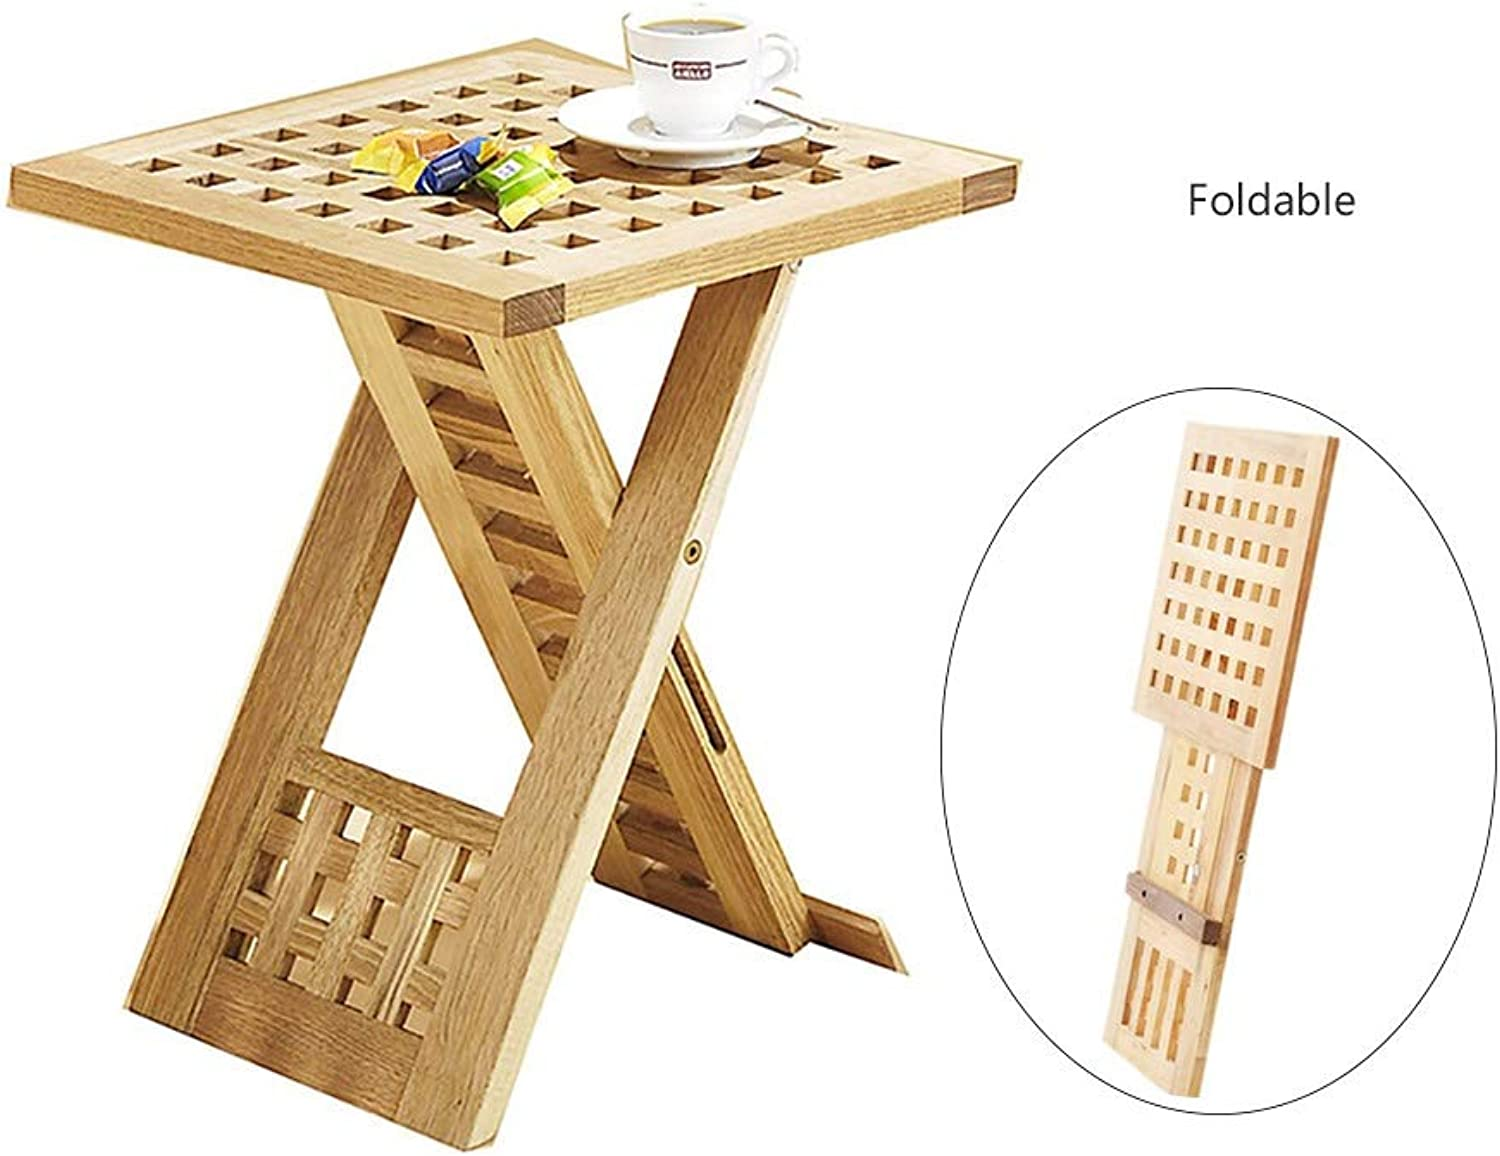 Portable Solid Wood Grid folding table, Wooden Square Grid Foldable Coffe Table 33  33cm, Convenient Storage Patio Side Table Space Saving Multi Purpose